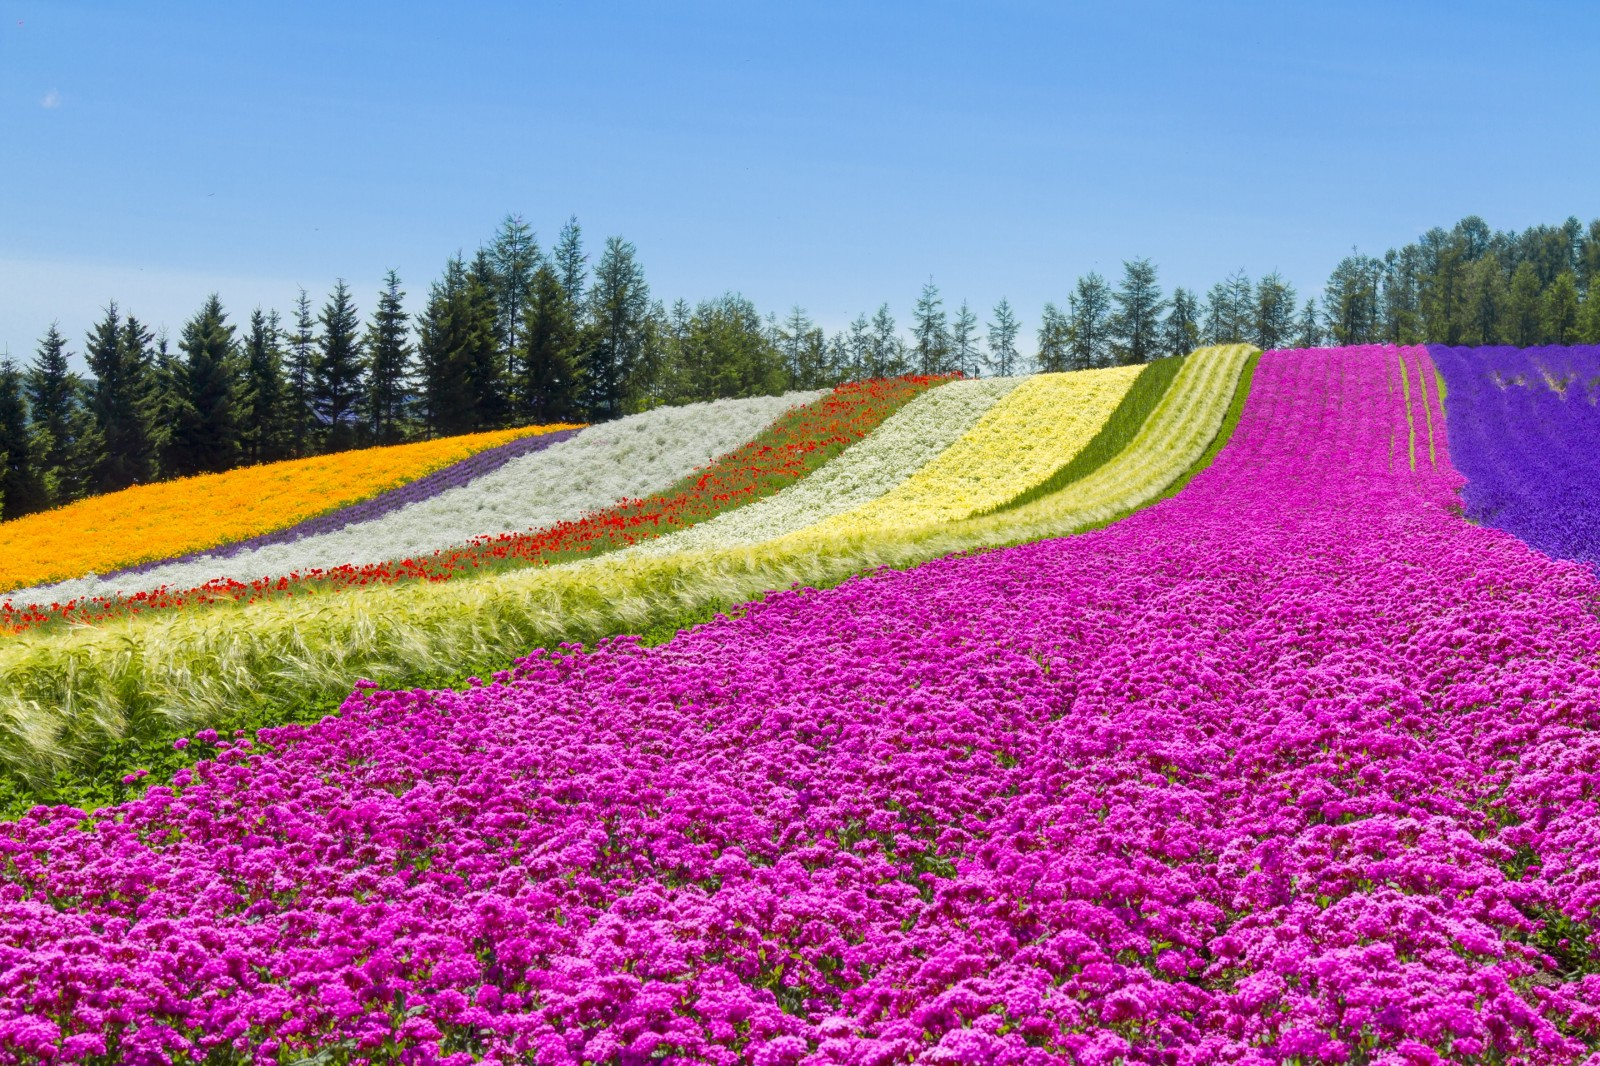 The colourful flower carpet at Tomita Farm, Furano